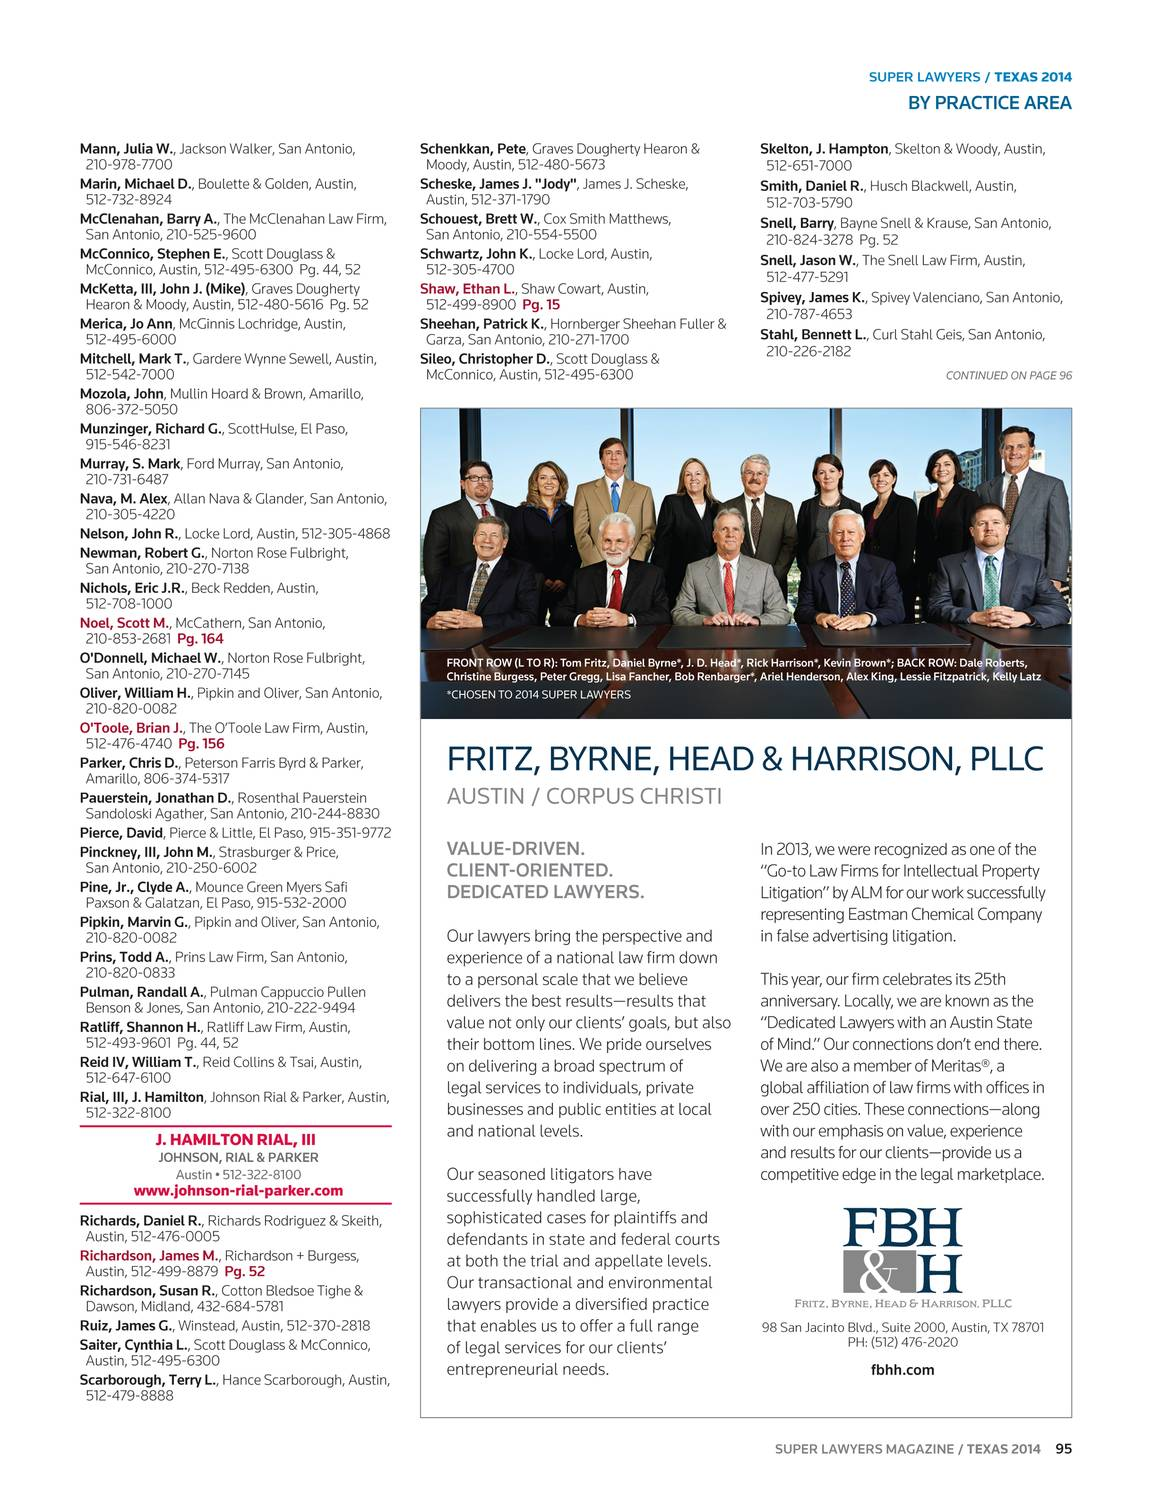 Super Lawyers - Texas 2014 - page 94